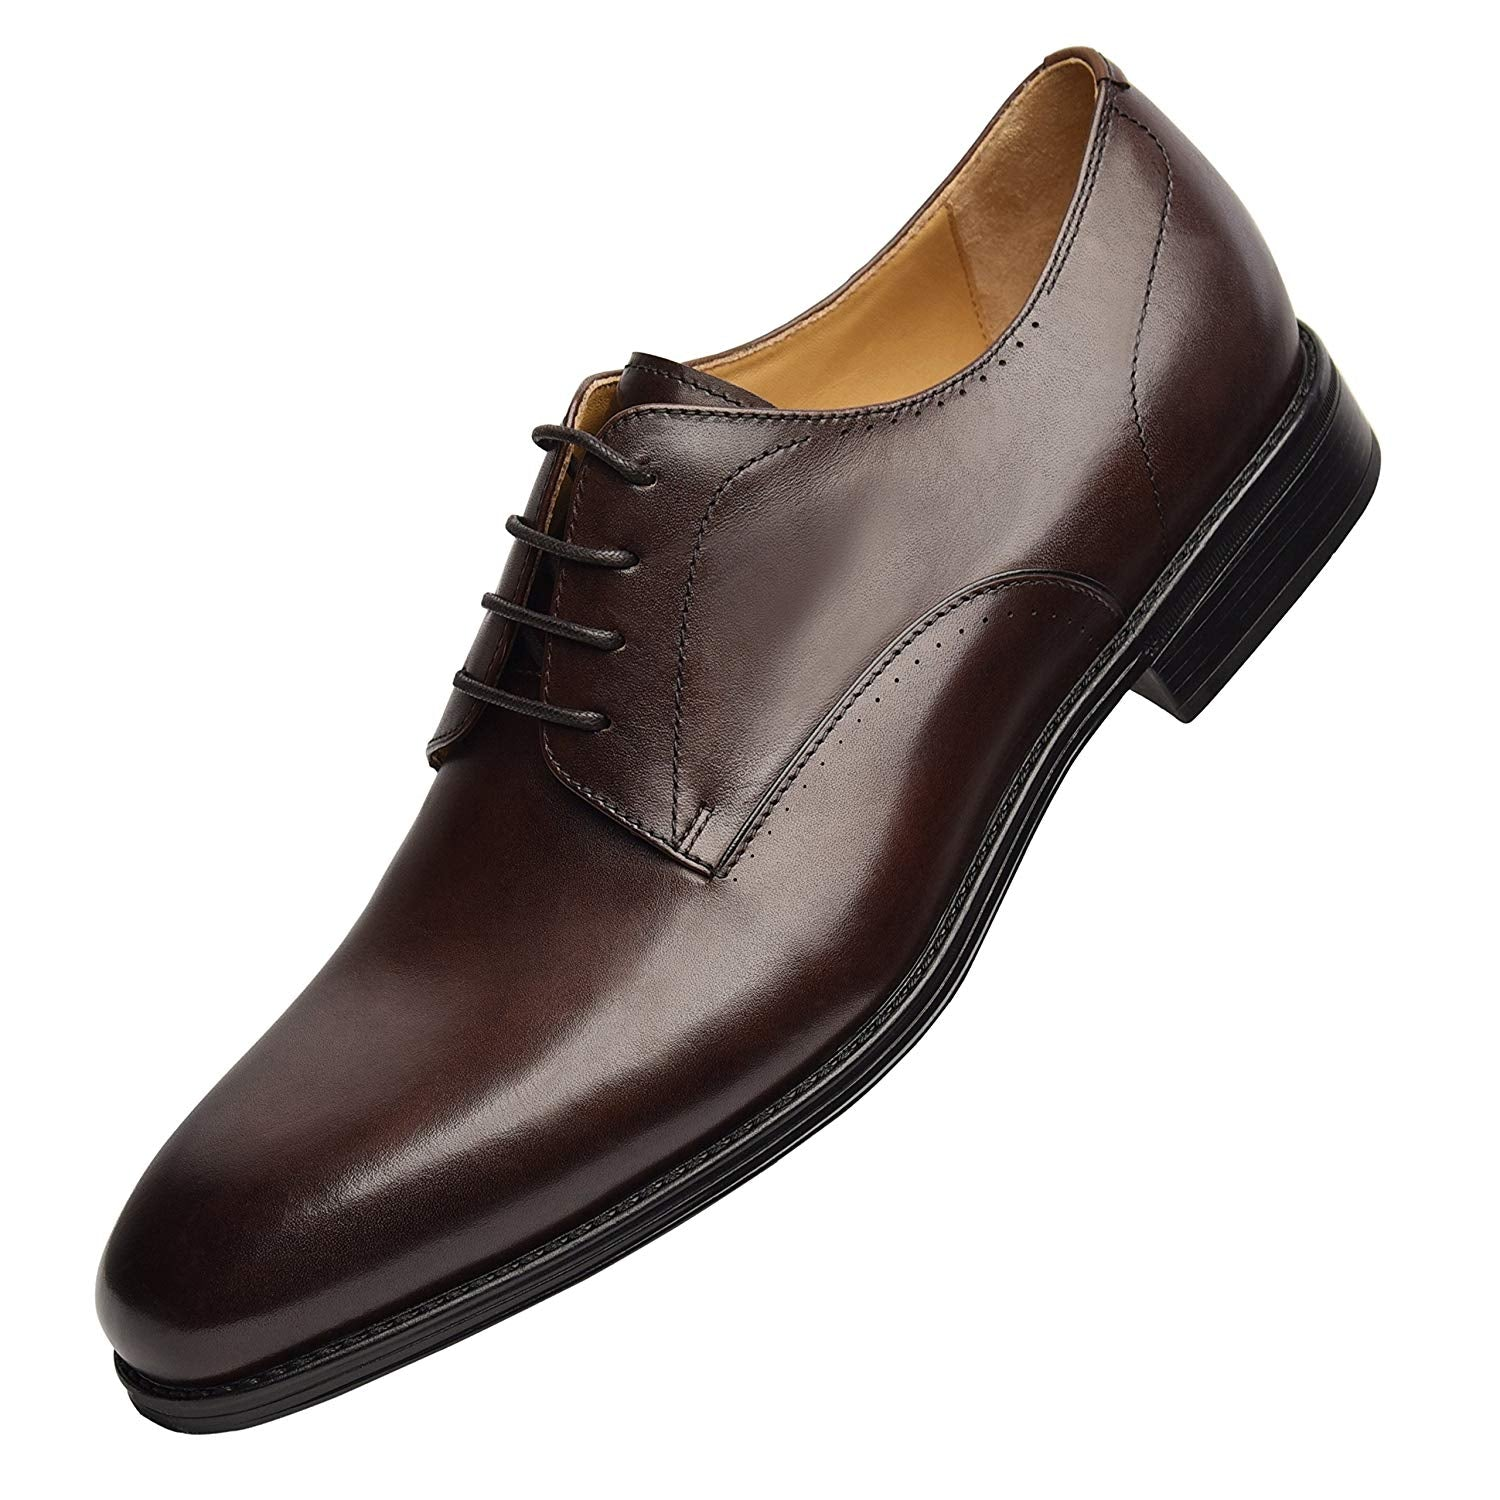 Men's Comfort Dress Shoes - Classic Genuine Leather Dress Shoes Oxford